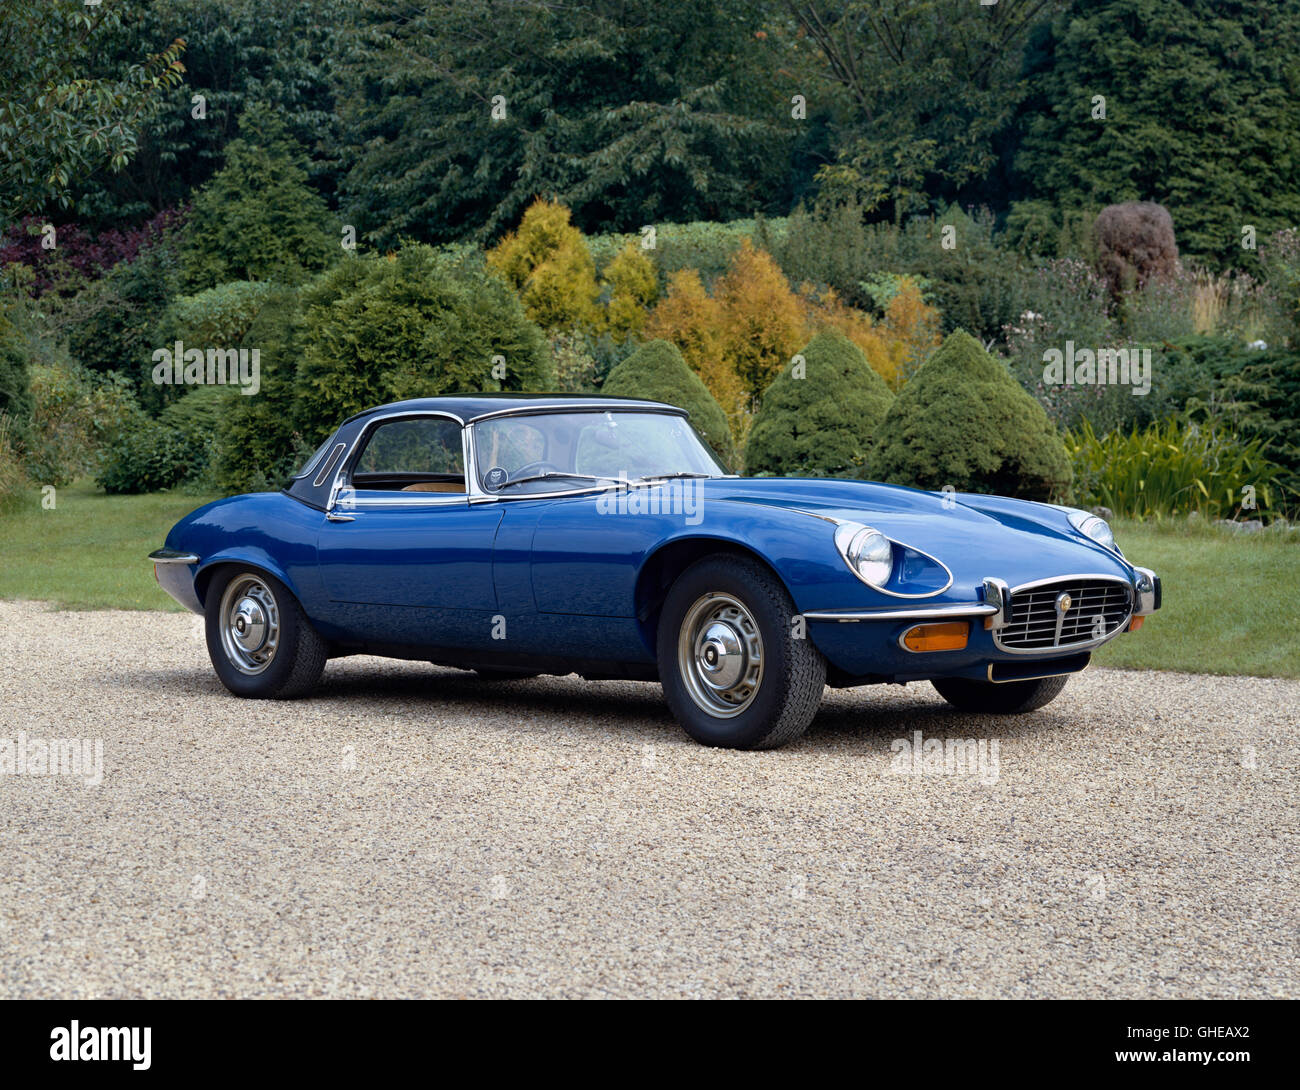 1973 Jaguar E Type Series III Roadster with 5343cc V12 DOHC engine developing 272bhp and top speed of 150mph Country - Stock Image